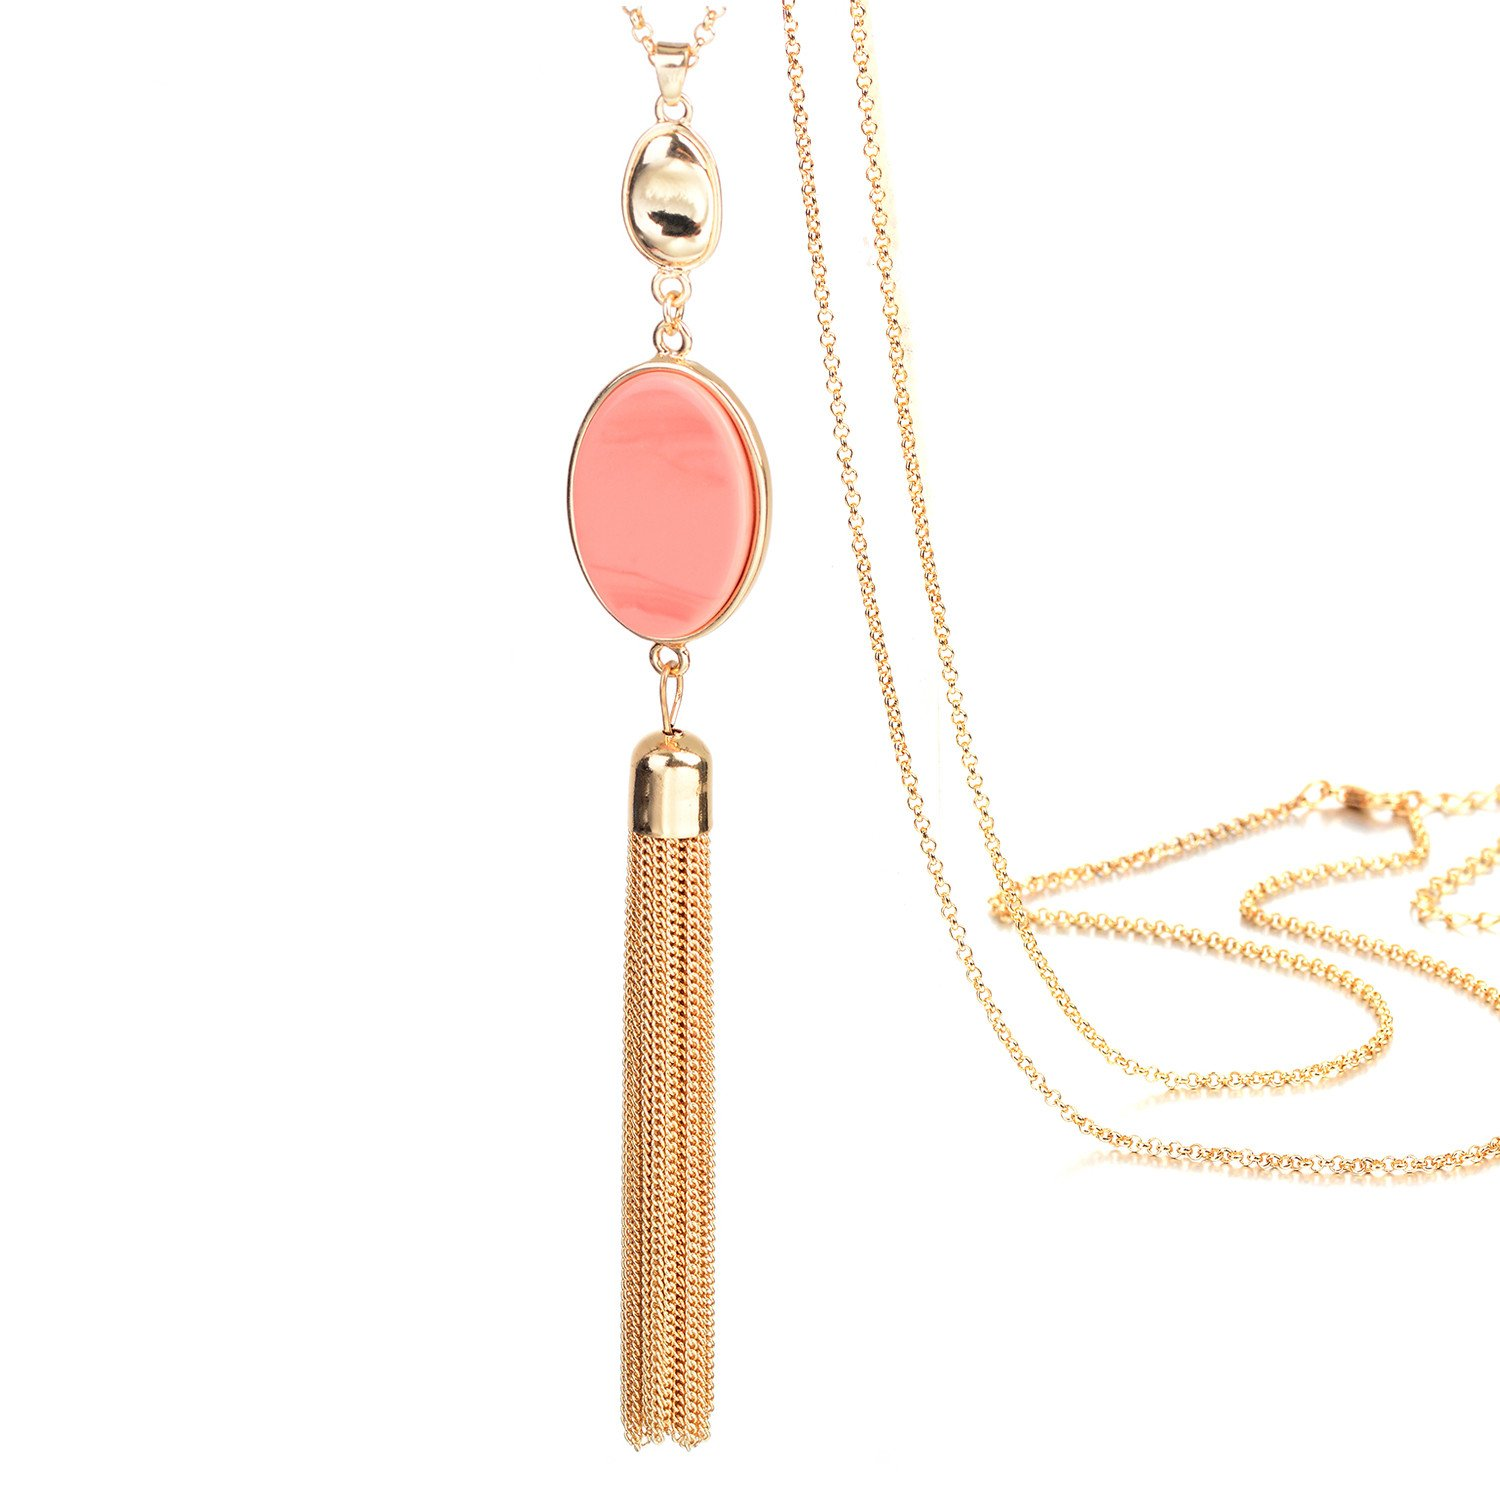 Gold Tone Long Chain Oval Pink Stone Pendant Tassel Necklace for Women Fashion Jewellery: Amazon.co.uk: Jewellery